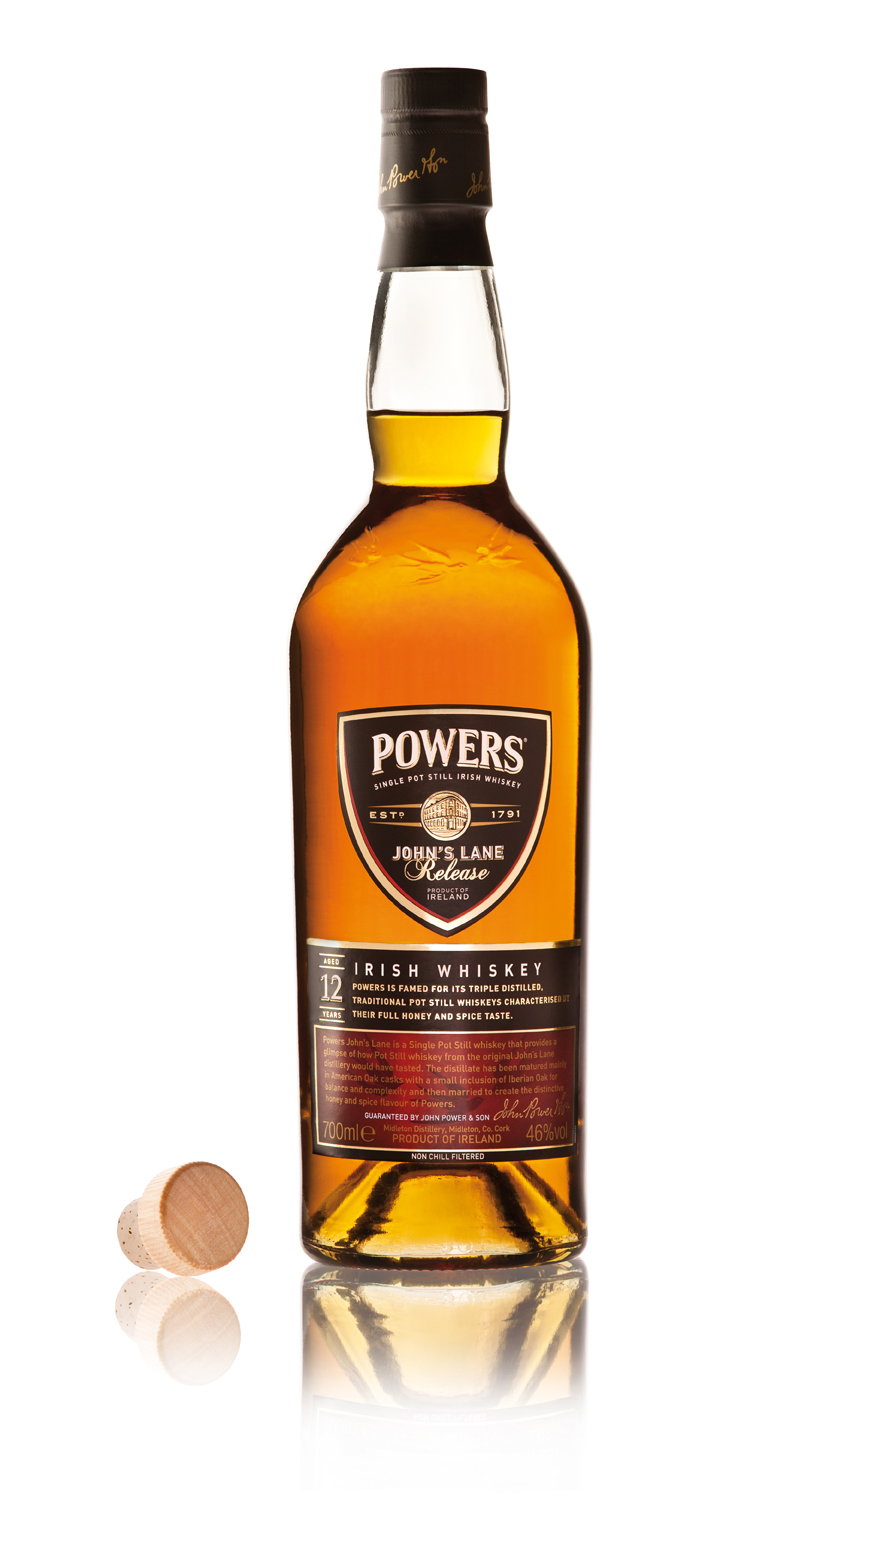 Powers John's Lane Irish Whiskey 12 Years Old